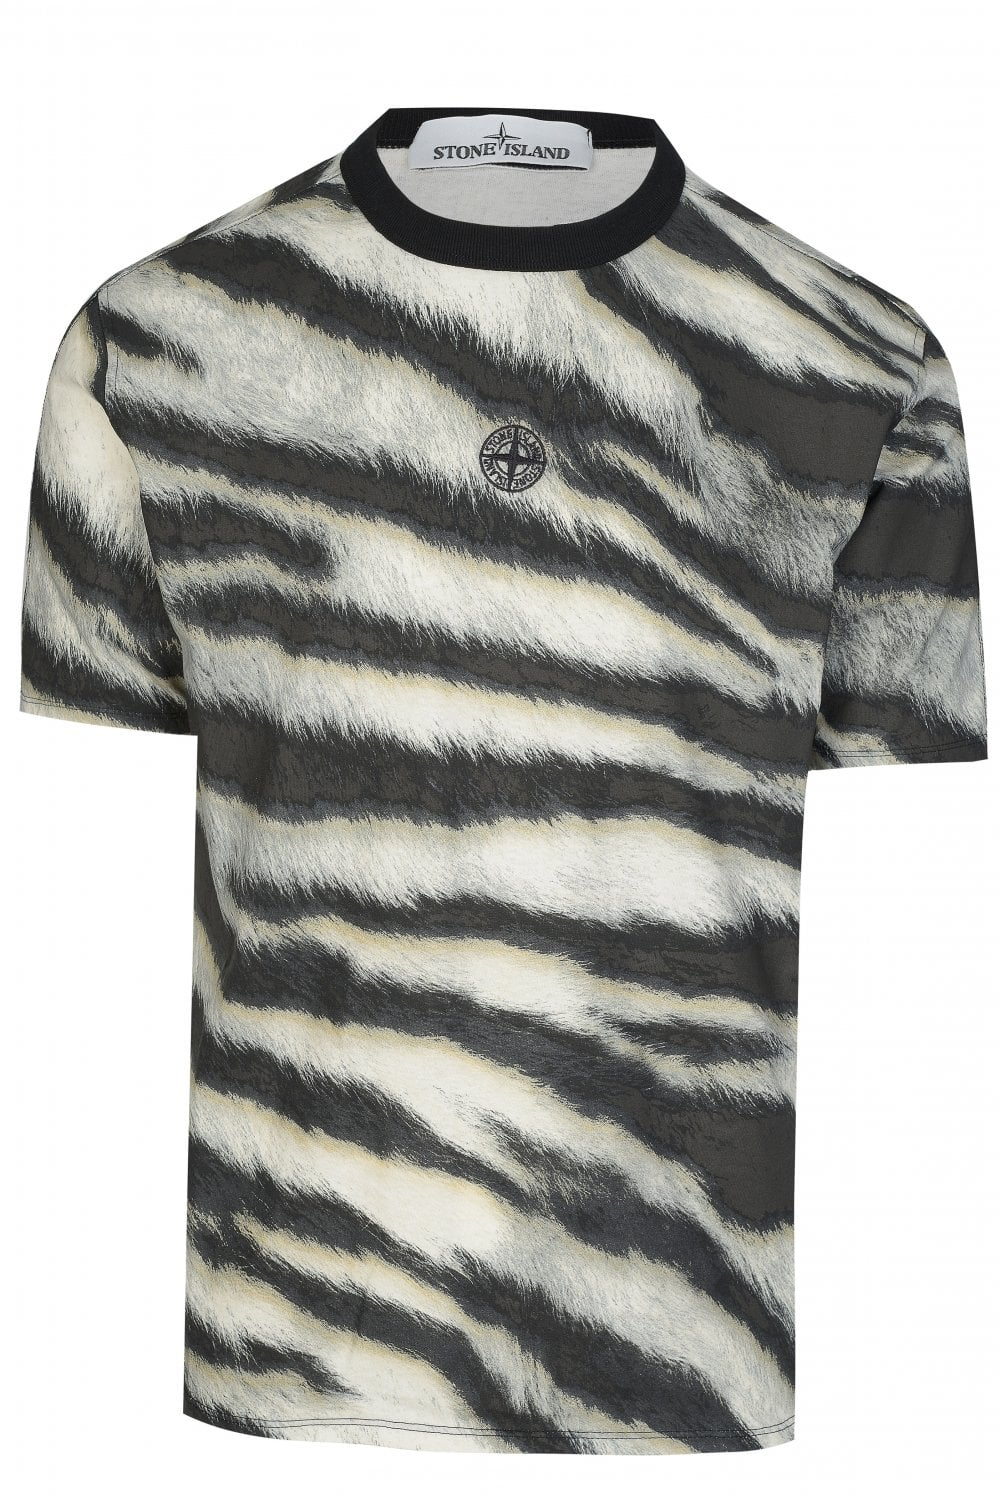 0e2a012867899 STONE ISLAND Stone Island Tiger Print Camouflage T-shirt - Clothing ...